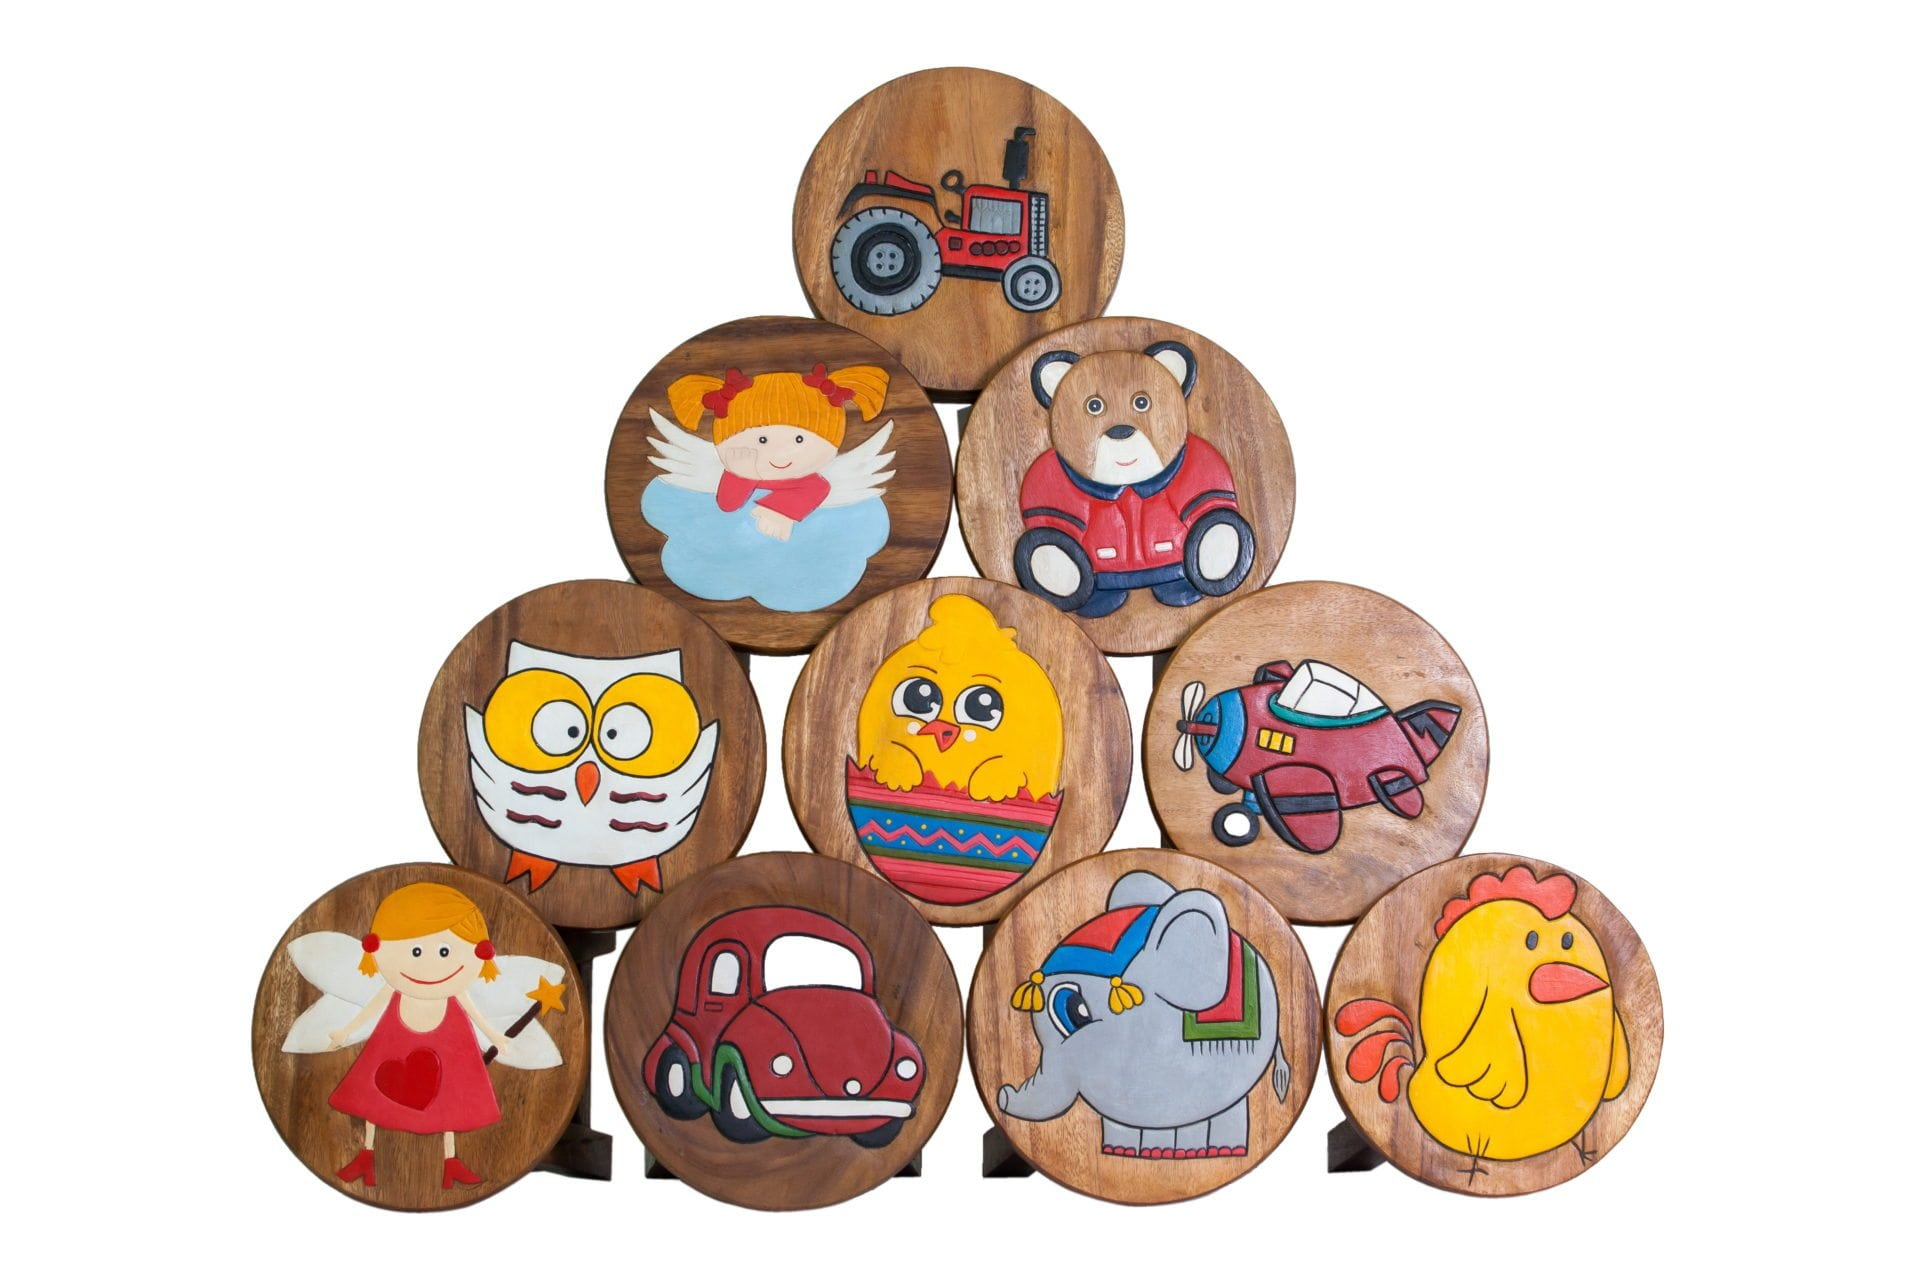 CHILDRENS WOODEN STOOLS AND KIDS' FURNITURE